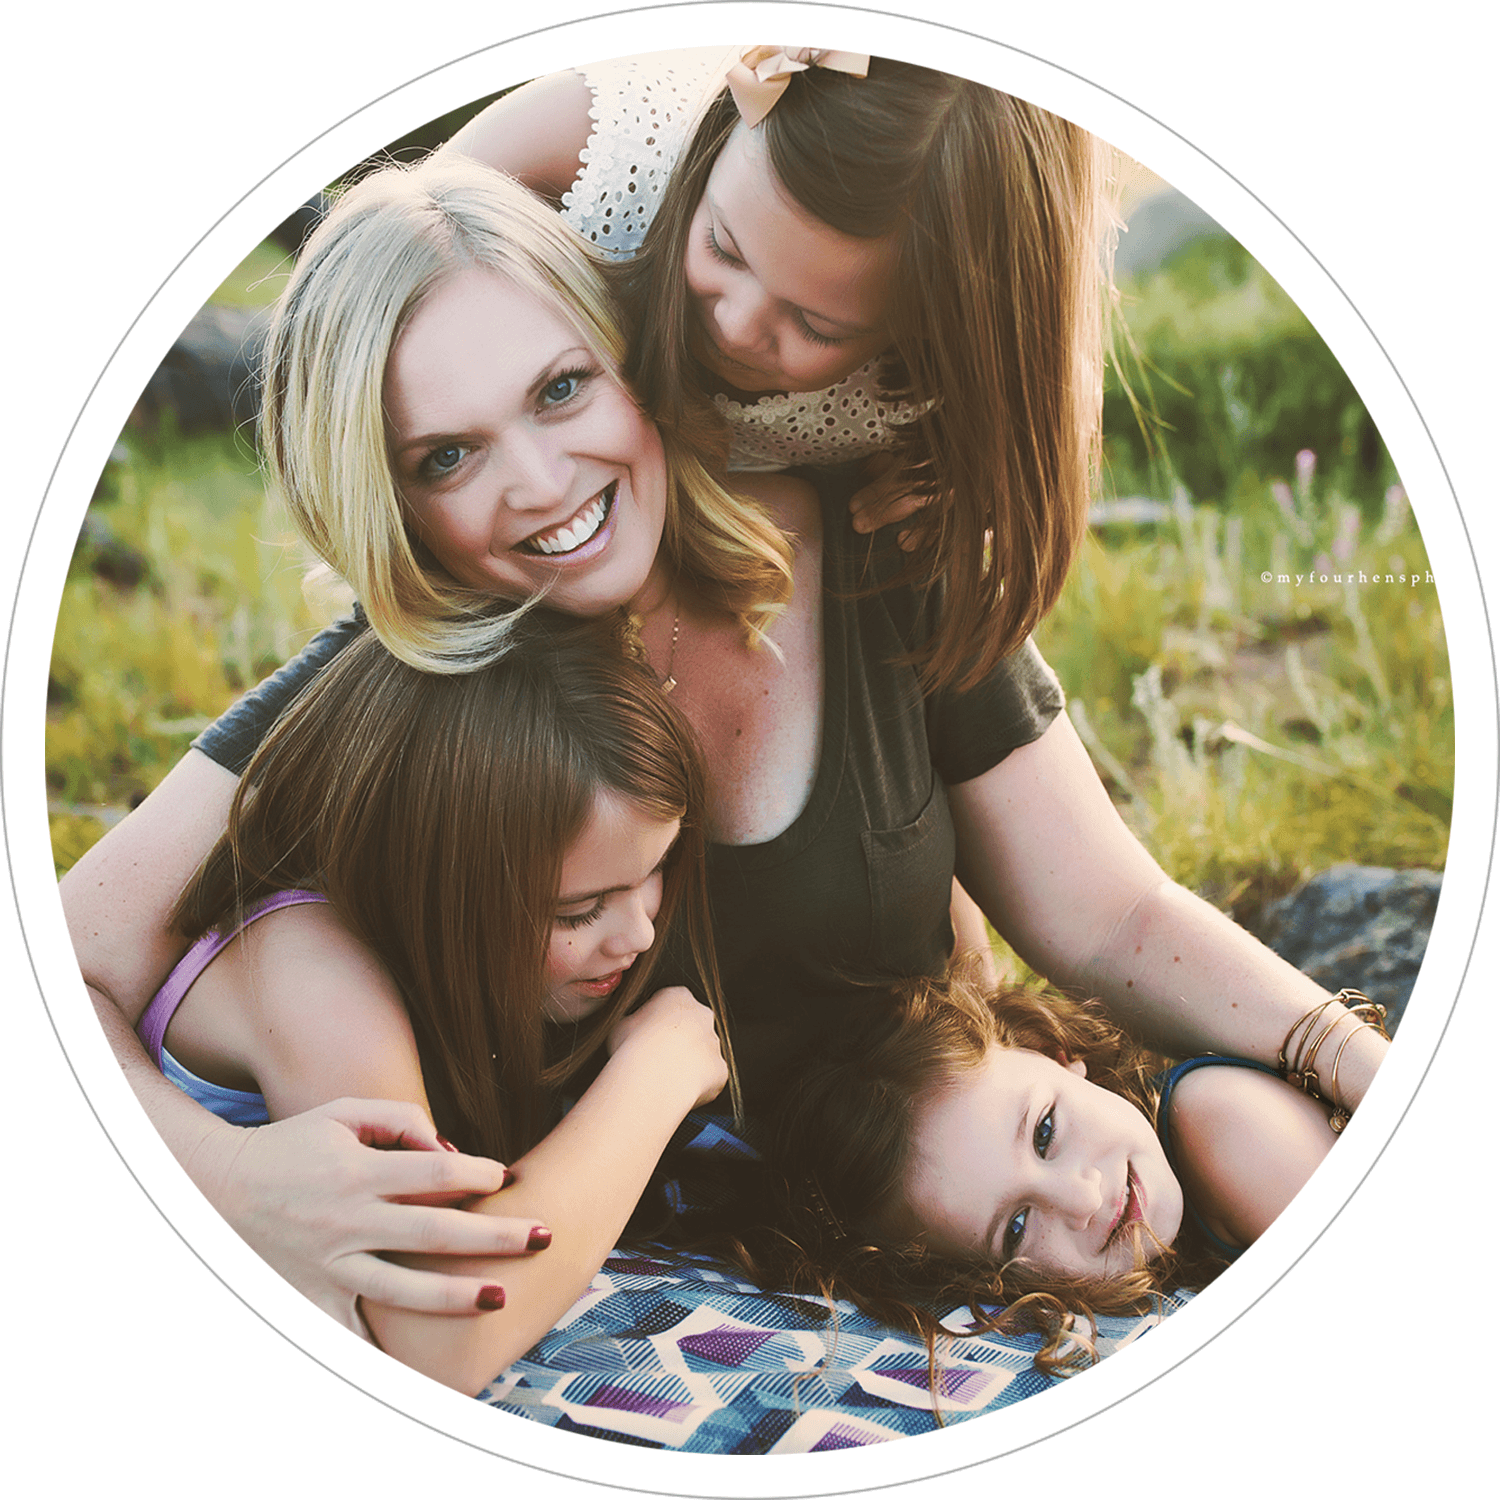 Professional Photographer Rancho Santa Margarita, Family Photographer, Child Photographer, Infant Photographer Rancho Santa Margarita